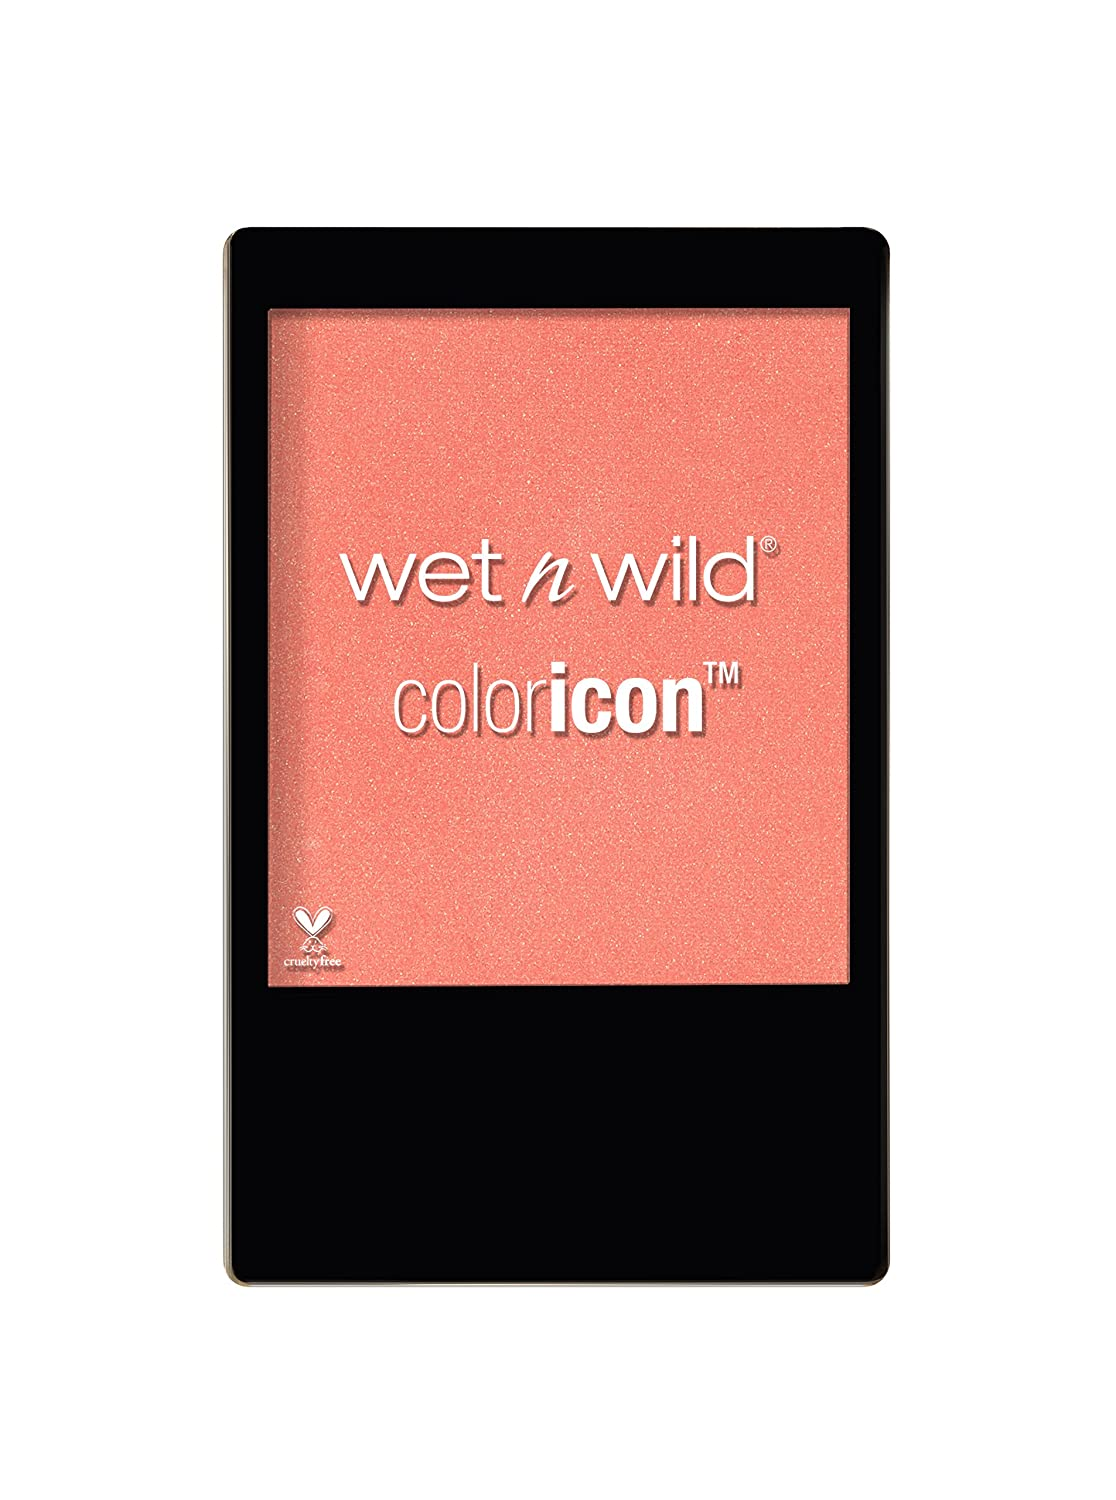 wet n wild Color Icon Blush, Pearlescent Pink, 0.206 Ounce